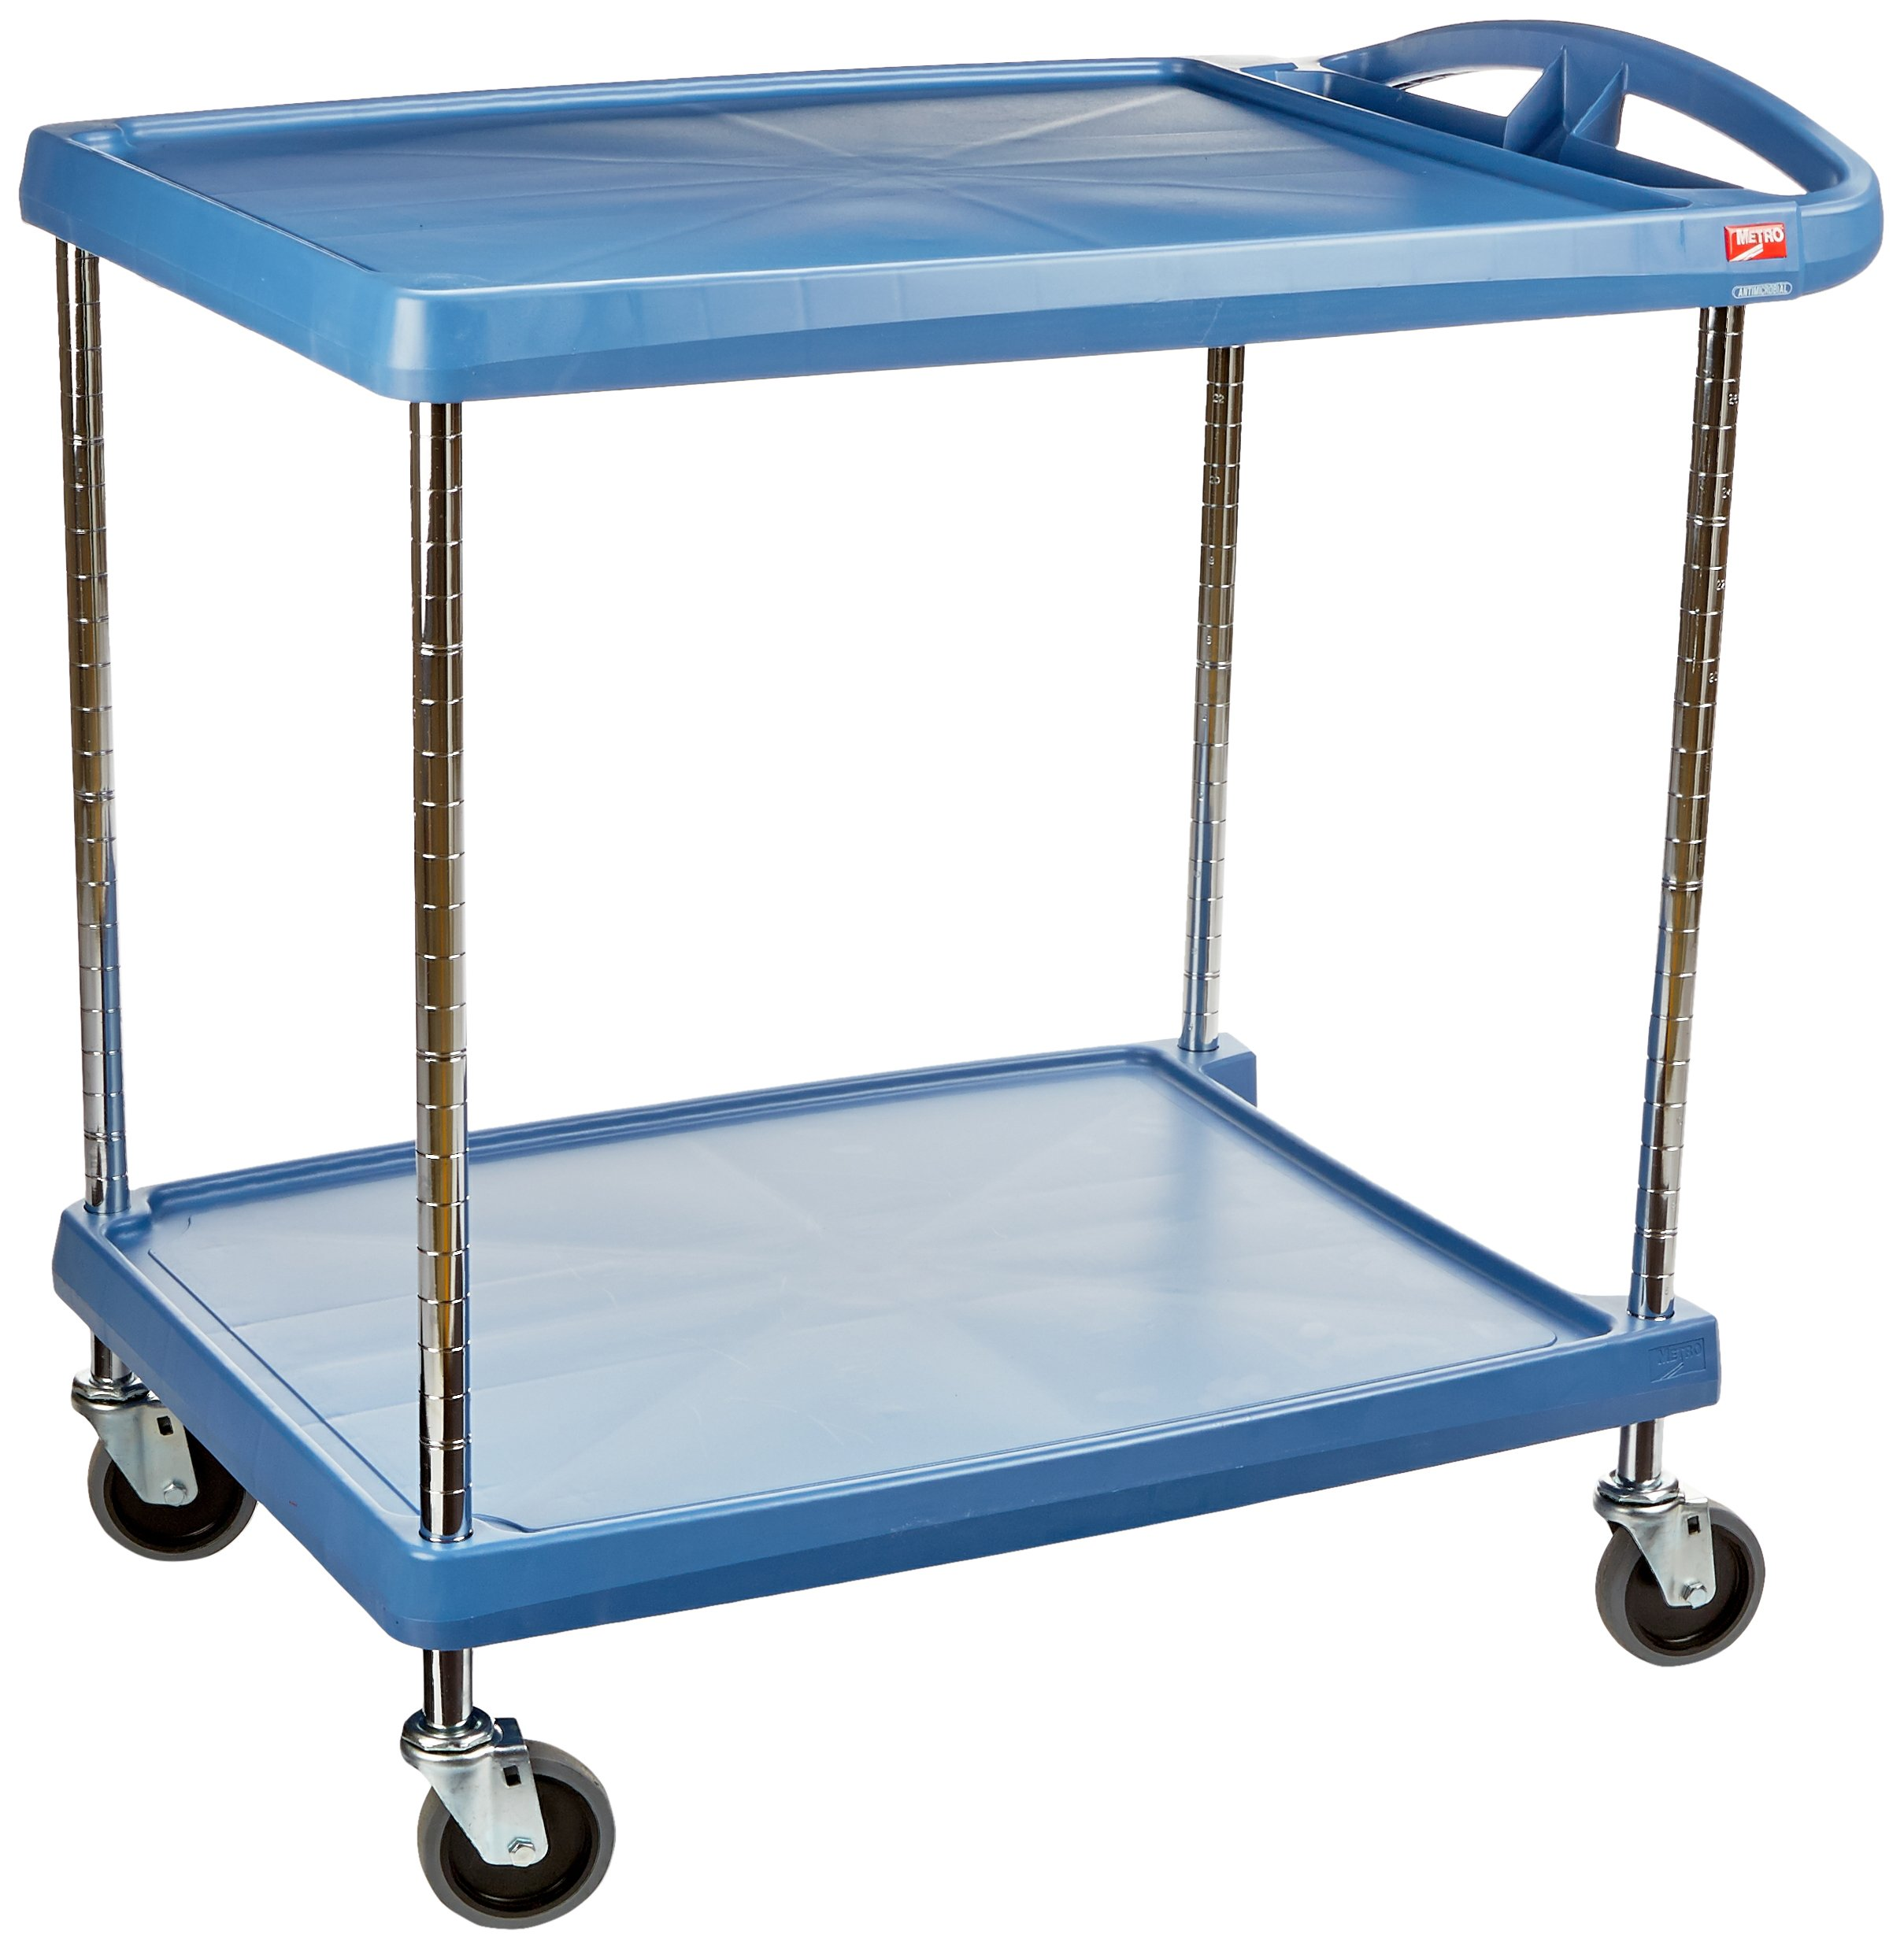 InterMetro Industries MY2030-24BU Mycart Series Blue Polymer Utility Cart with Built-in Microban Antimicrobial Product Protection, 2 Shelf, 35.38 X 34.38 X 23.5-Inch